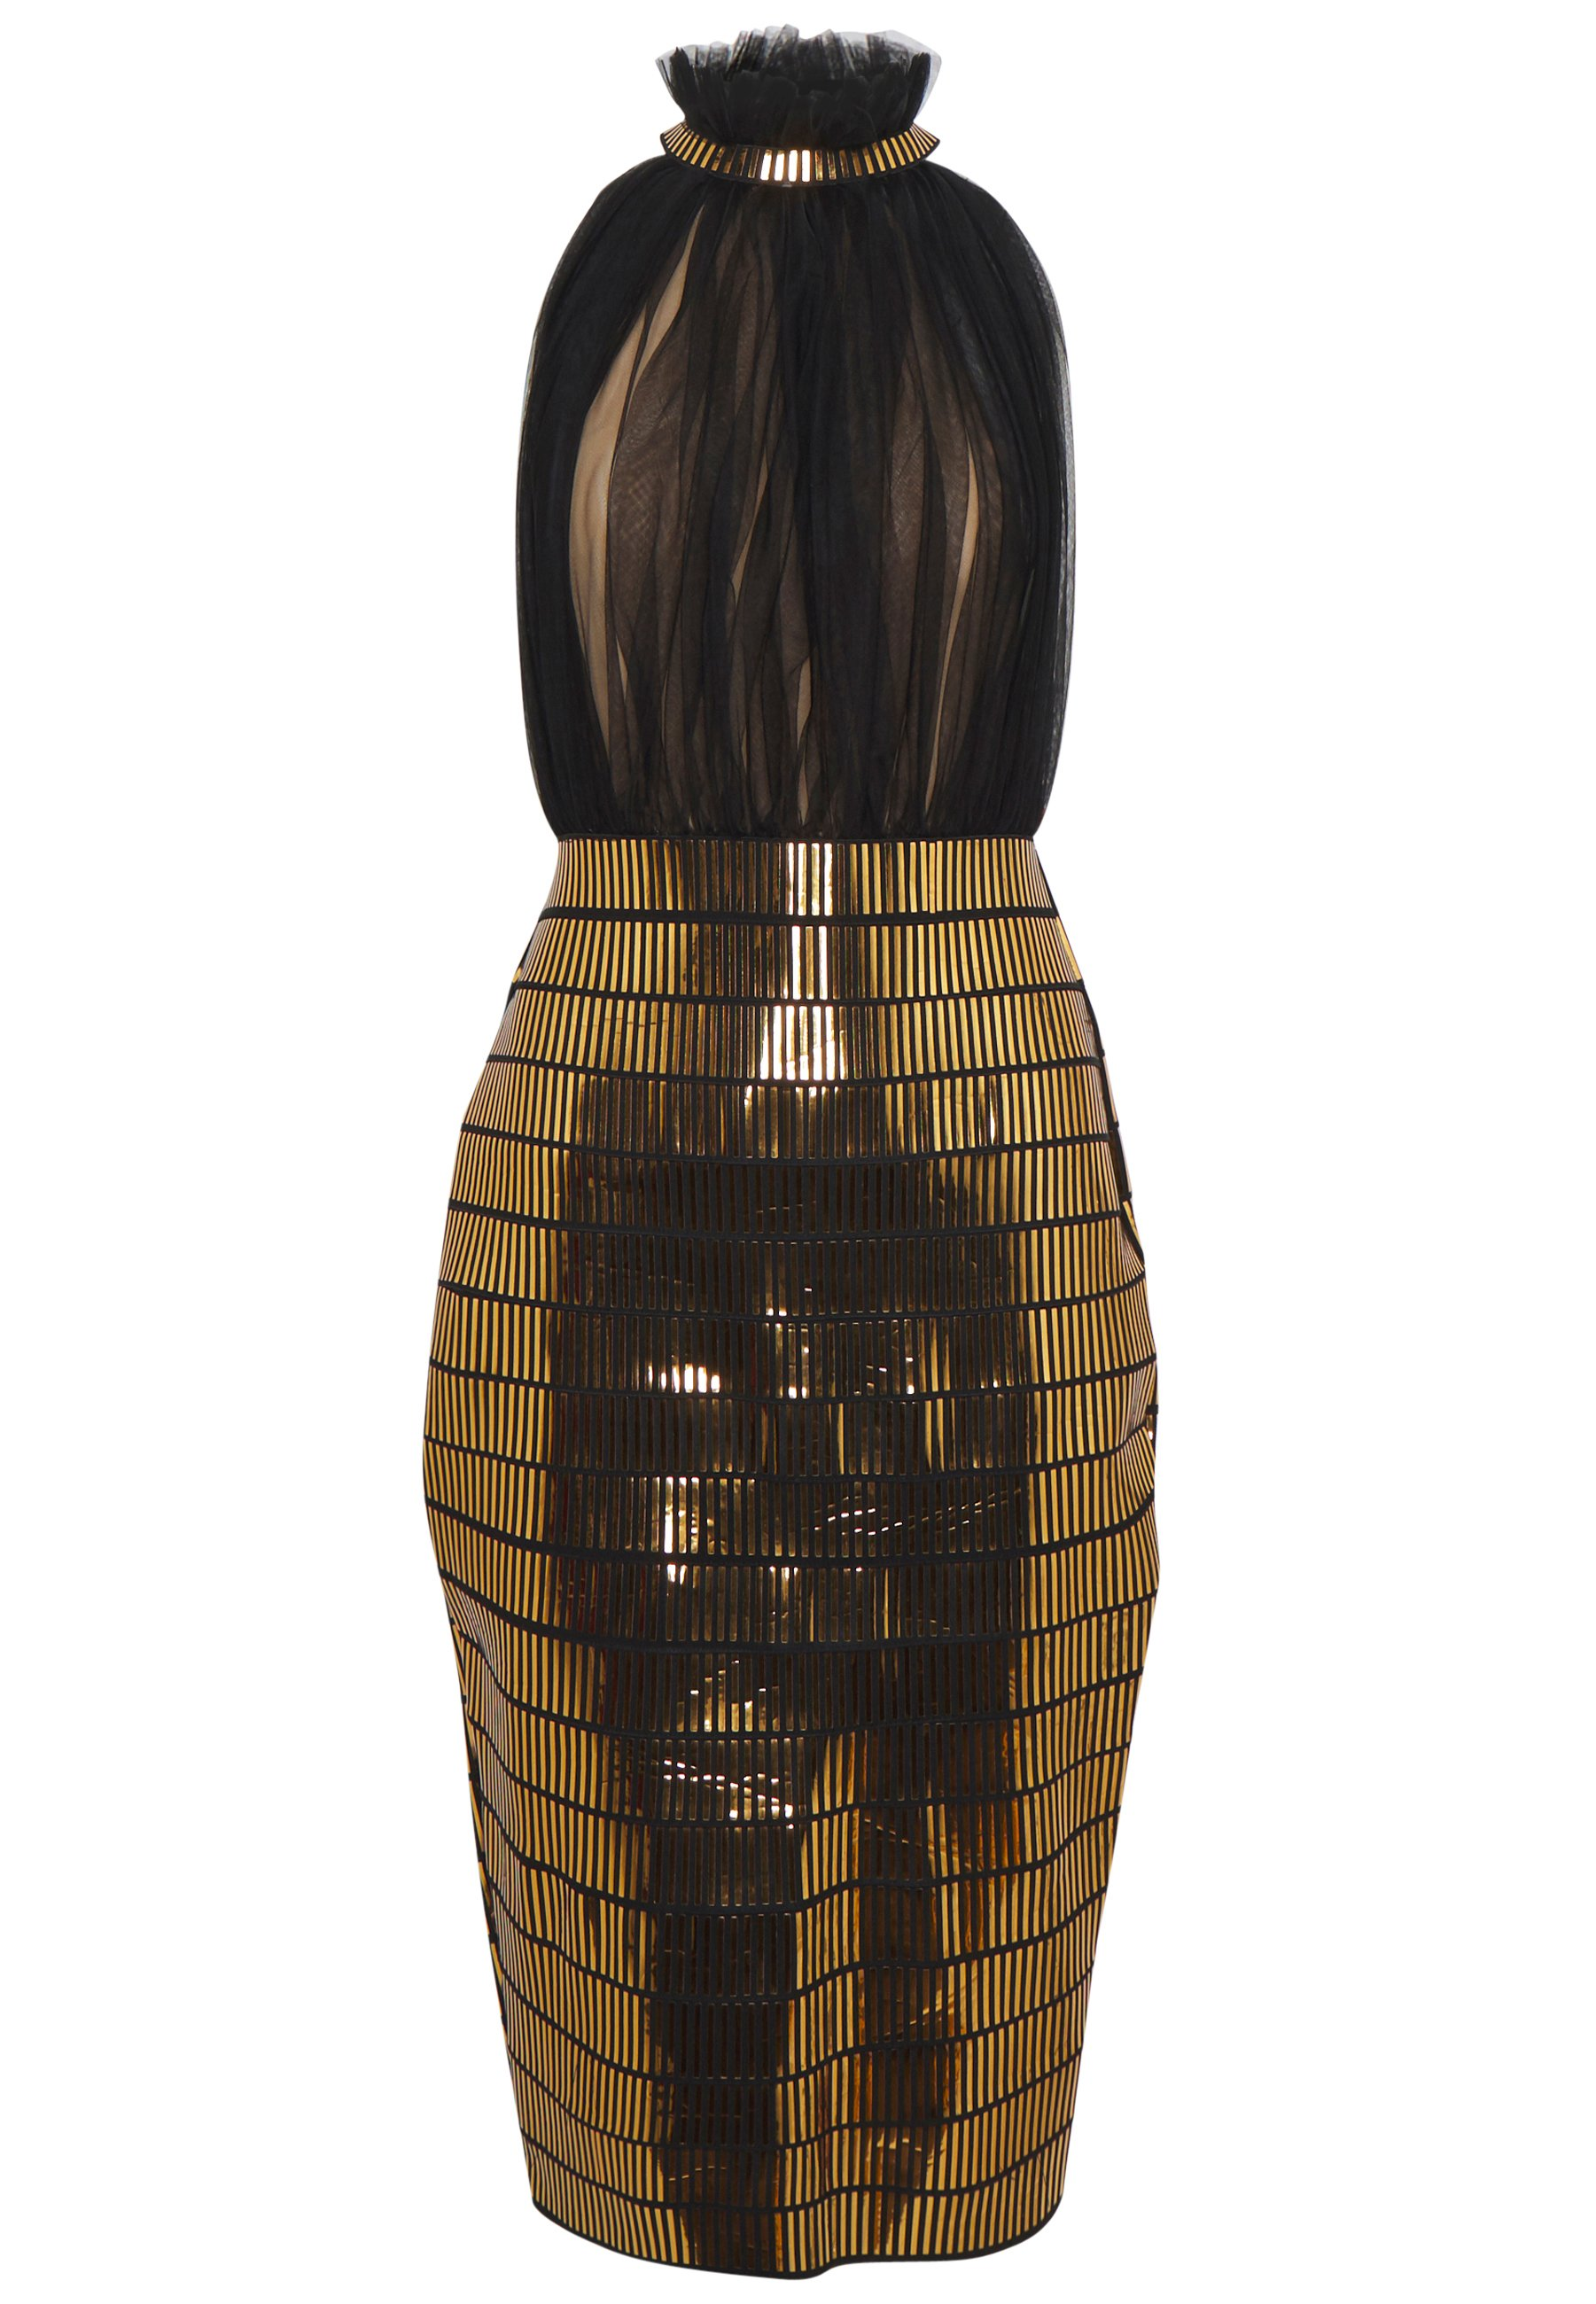 Lexi Micah Dress - Vestito Elegante Gold KjjWy6P